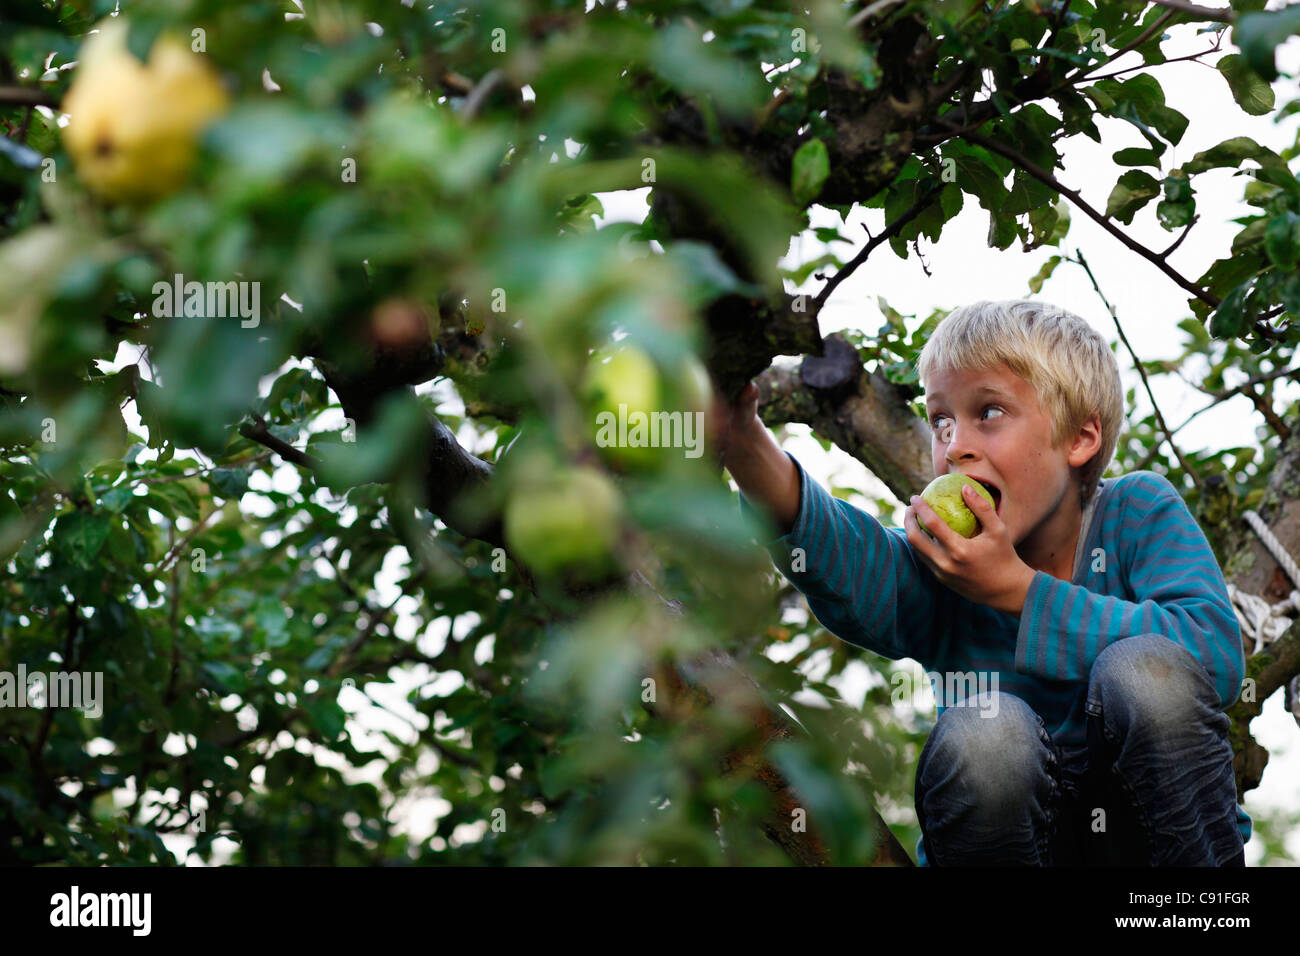 Boy eating in fruit tree Photo Stock